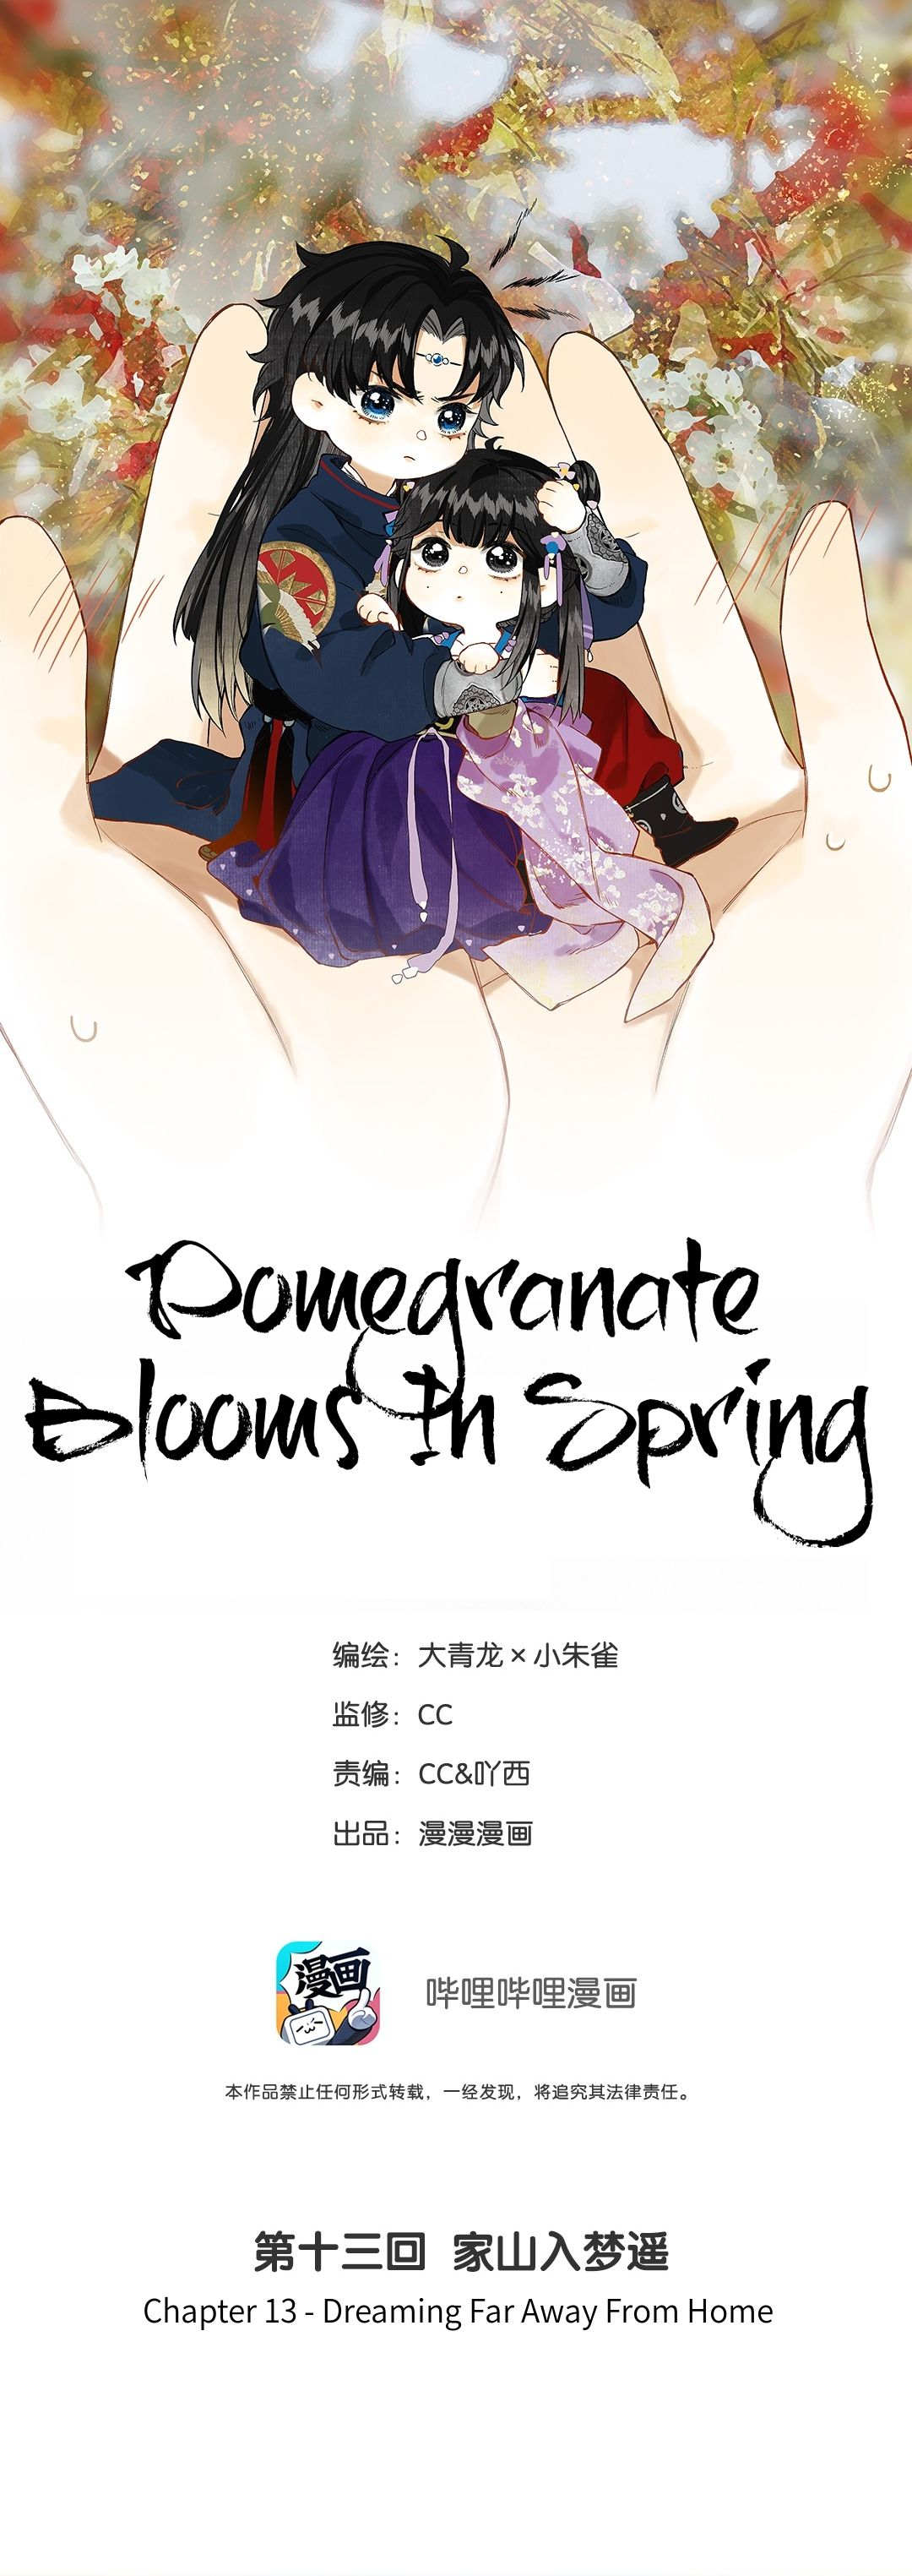 Pomegranate Blooms in Spring - chapter 13 - #2